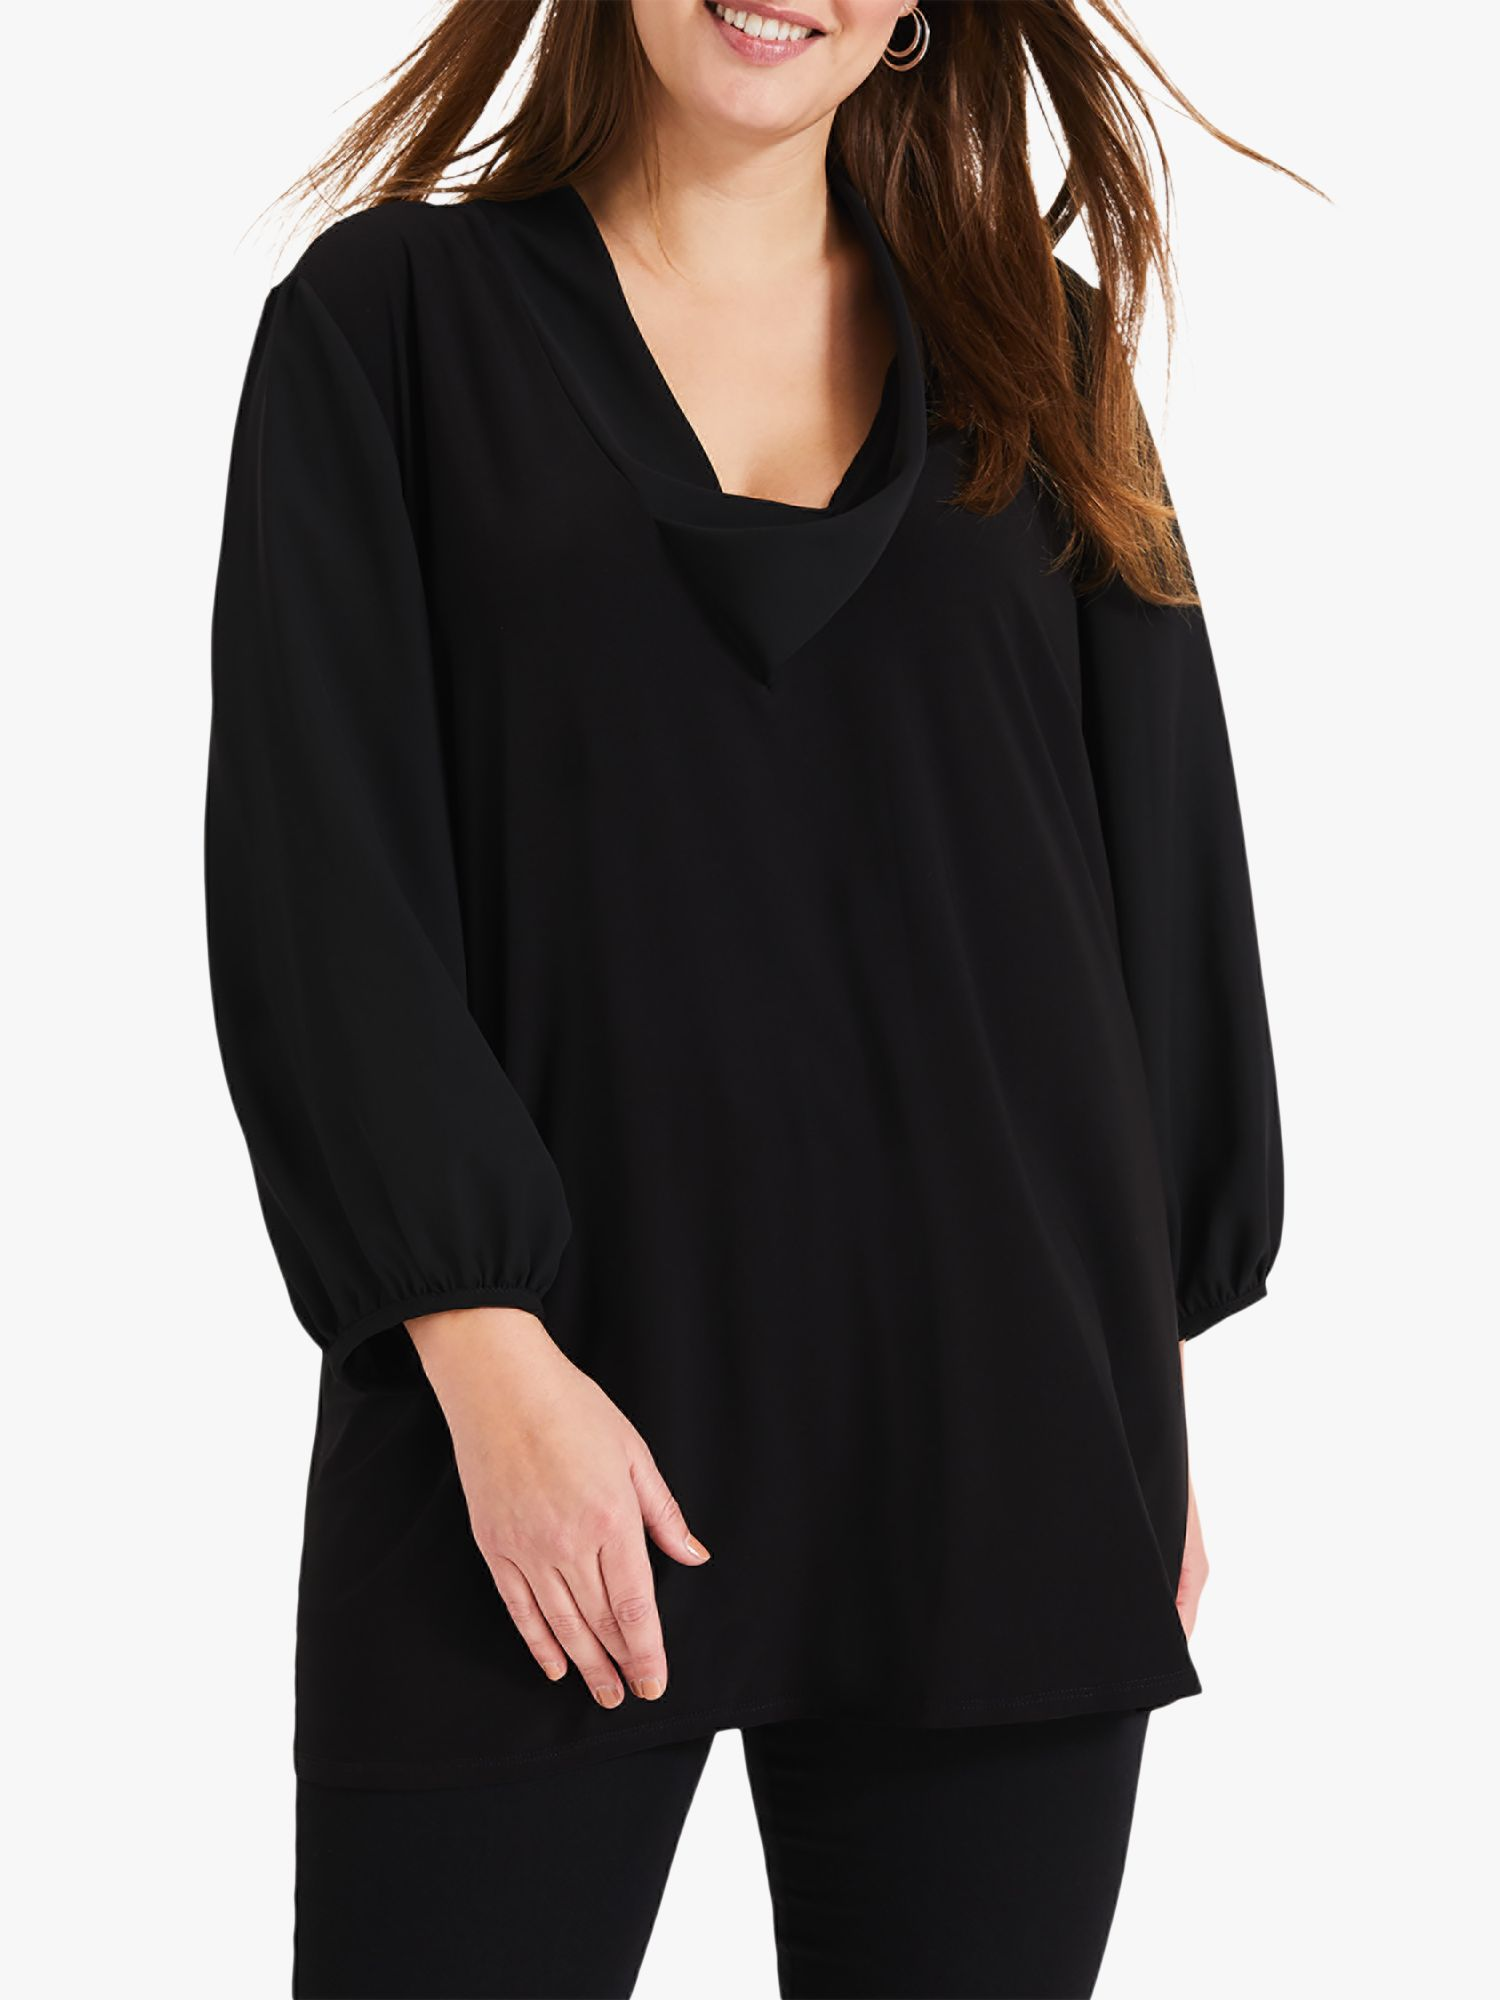 Studio 8 Studio 8 Melanie Cowl Neck Top, Black